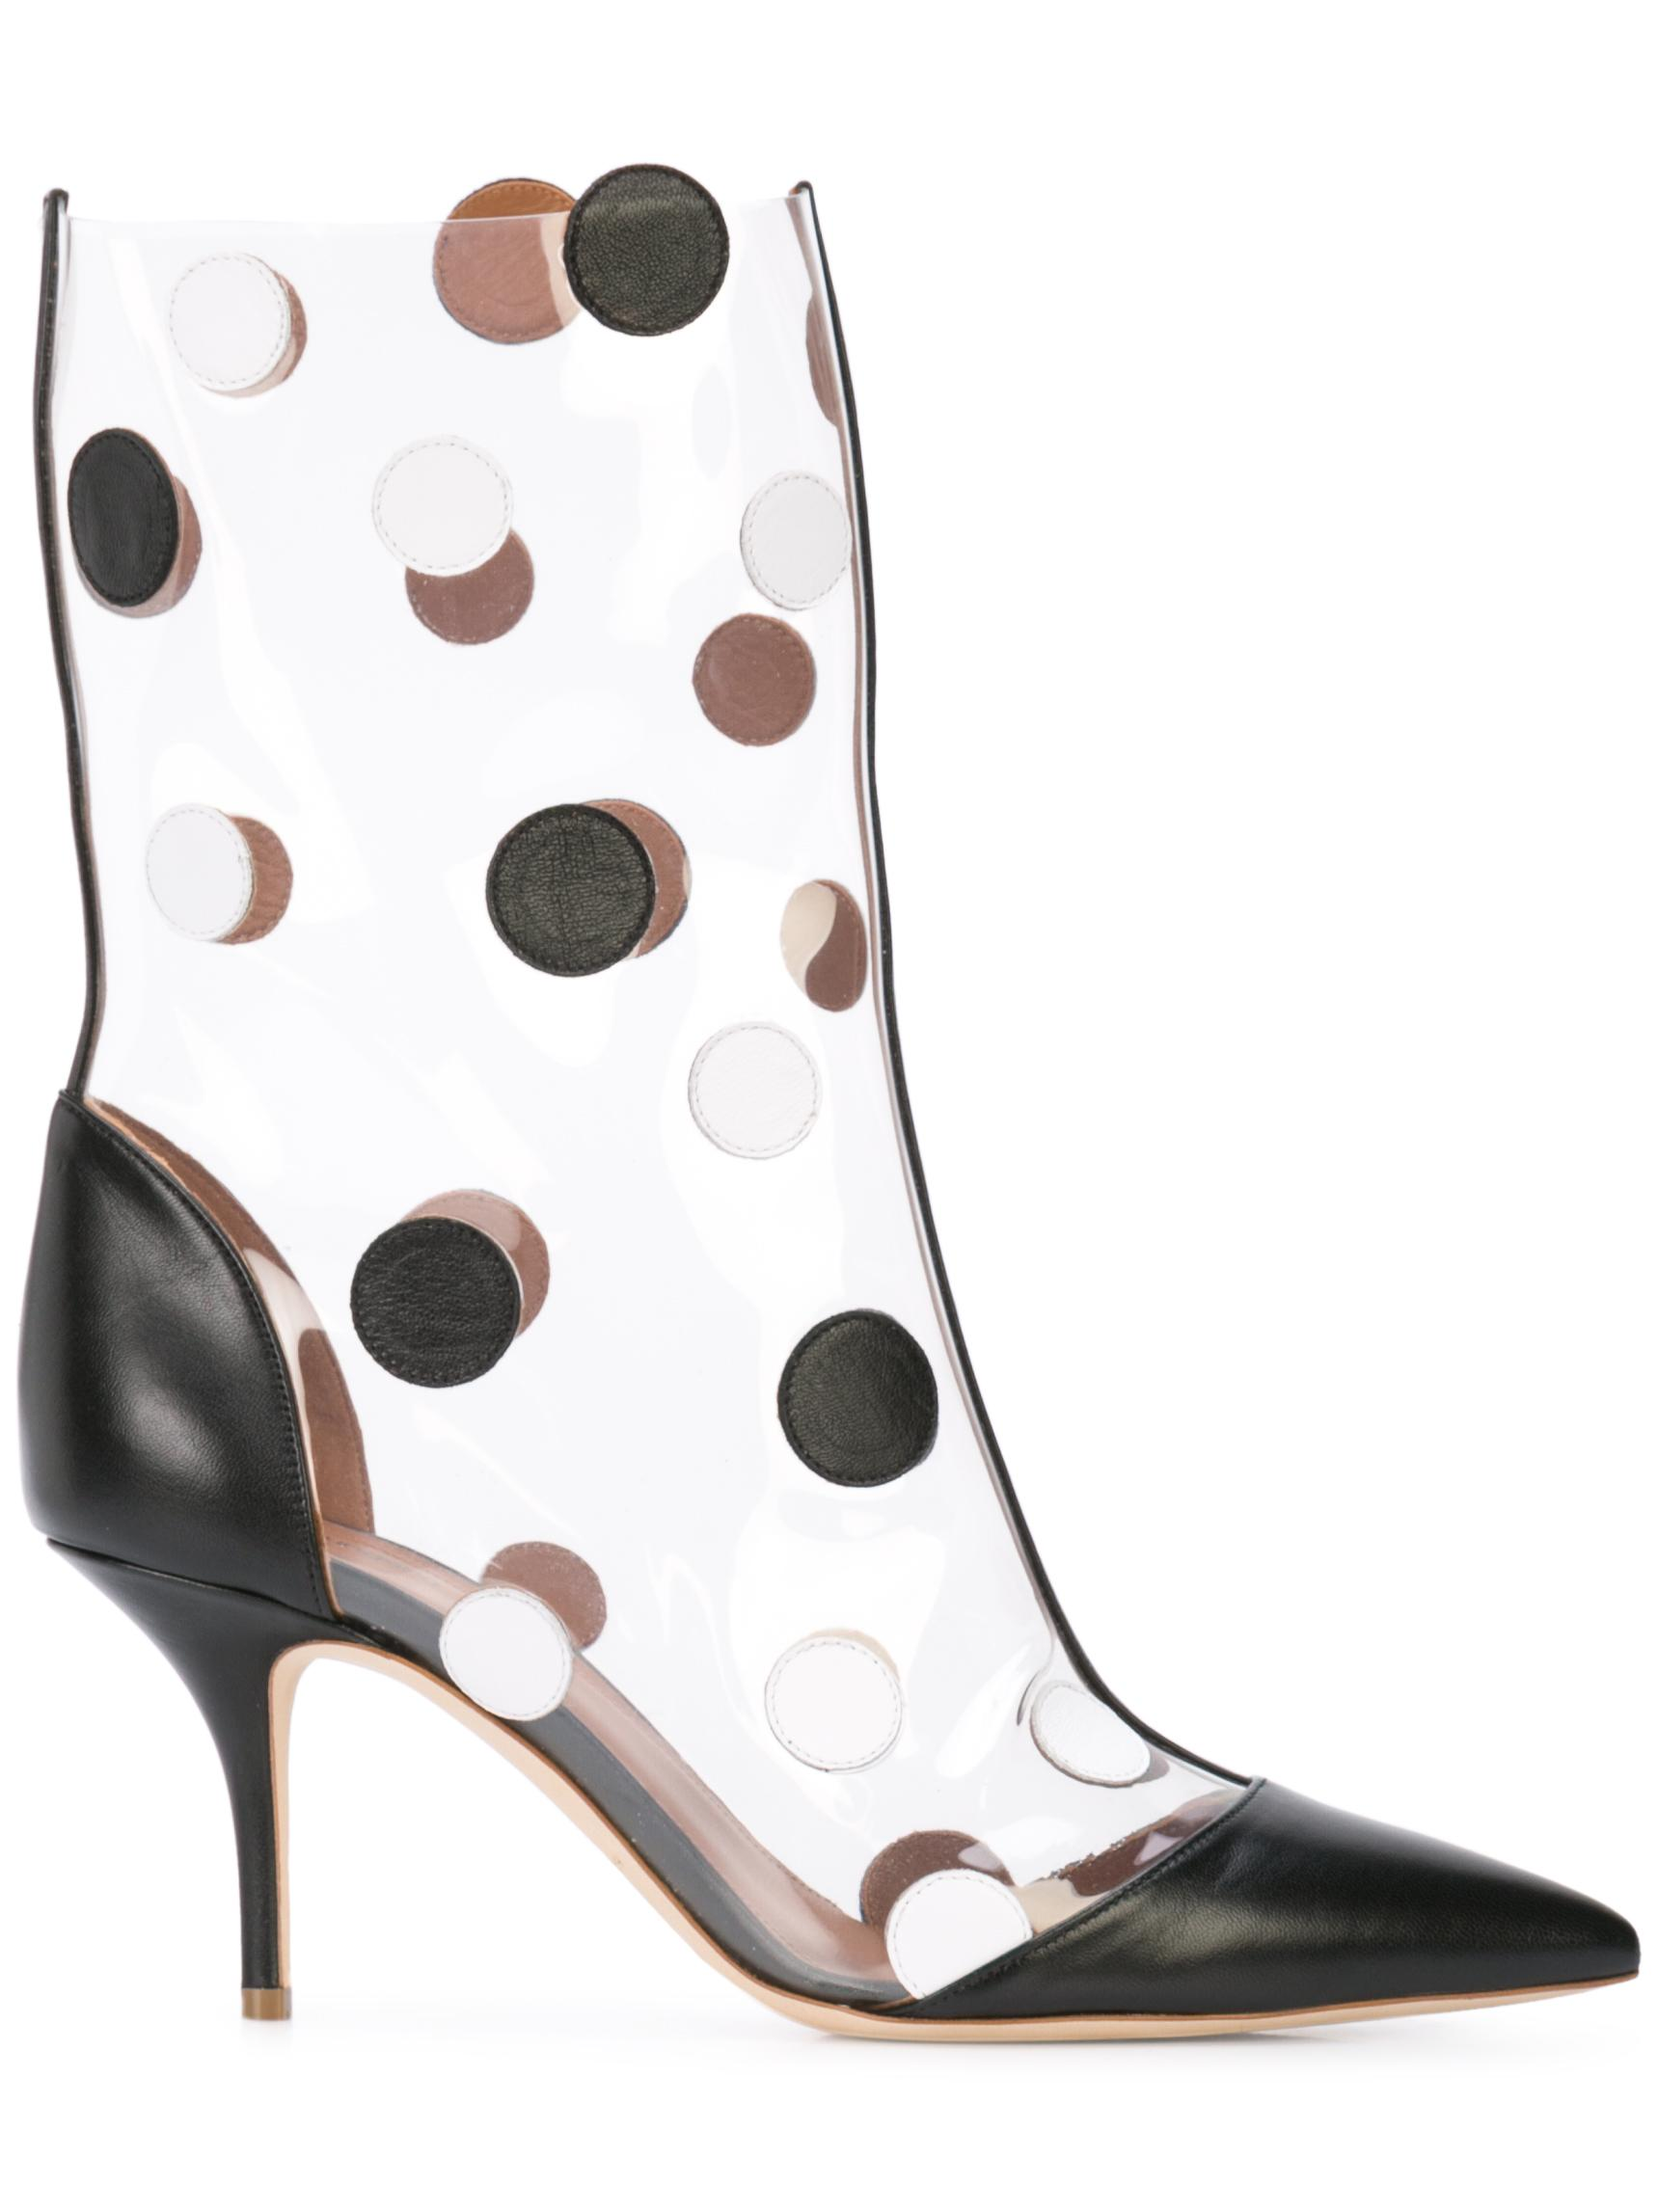 Point Toe 45mm Nappa/Pvc Dotted Bootie Item # KATOUCHA-2